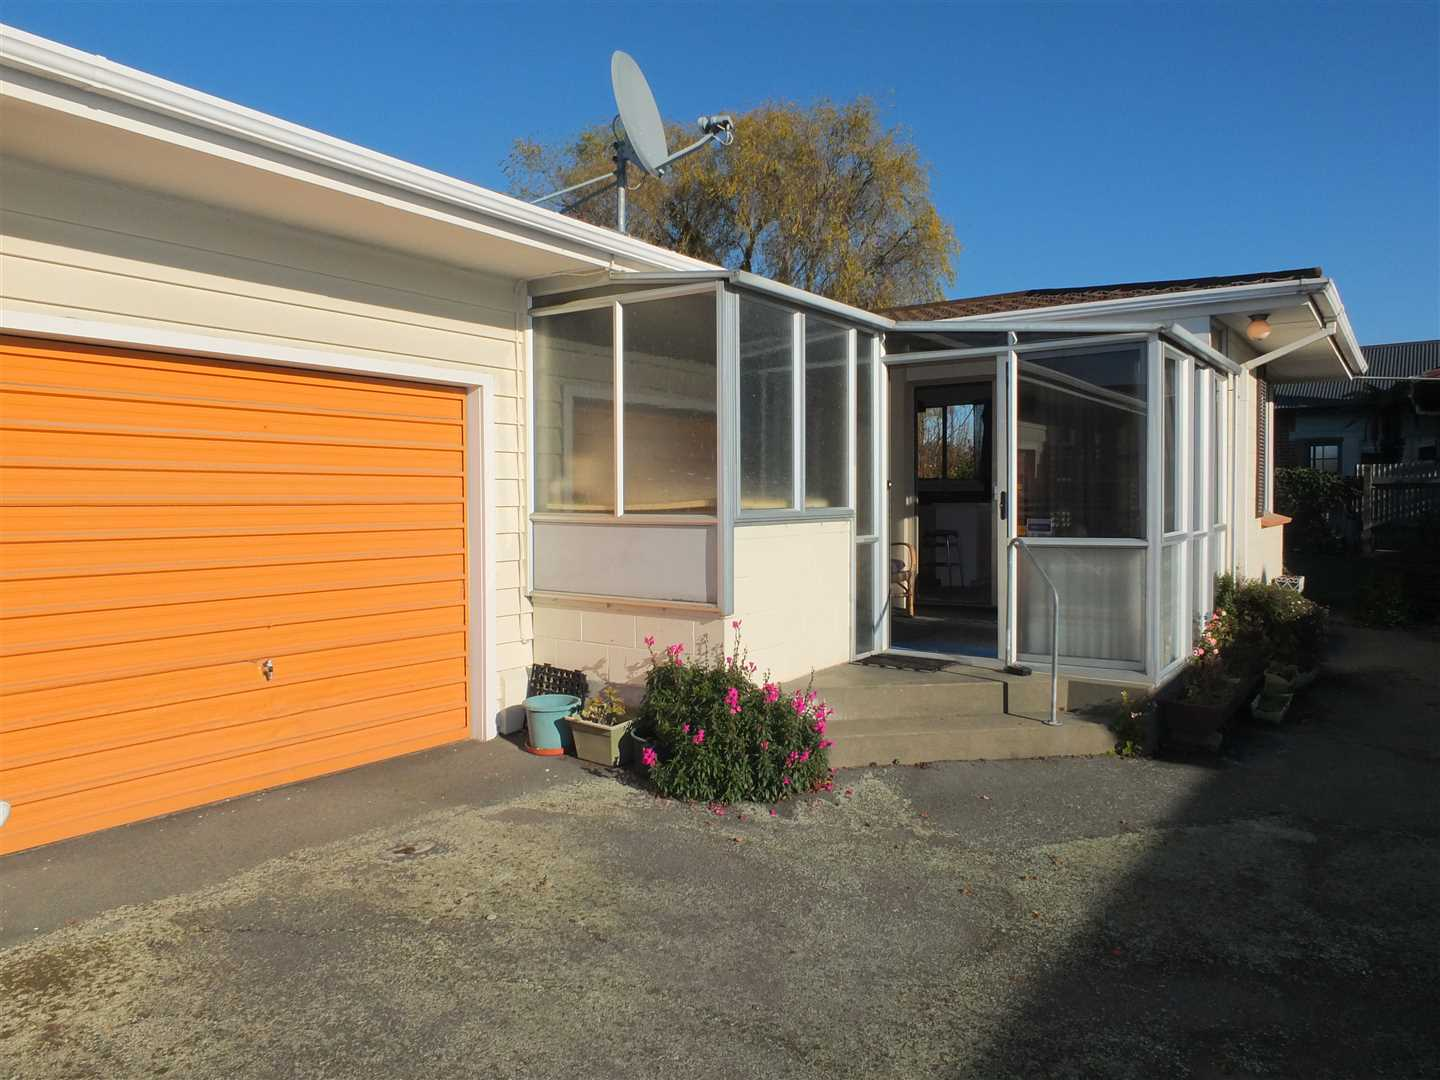 Easy Living & Affordable Buying @ $229,000